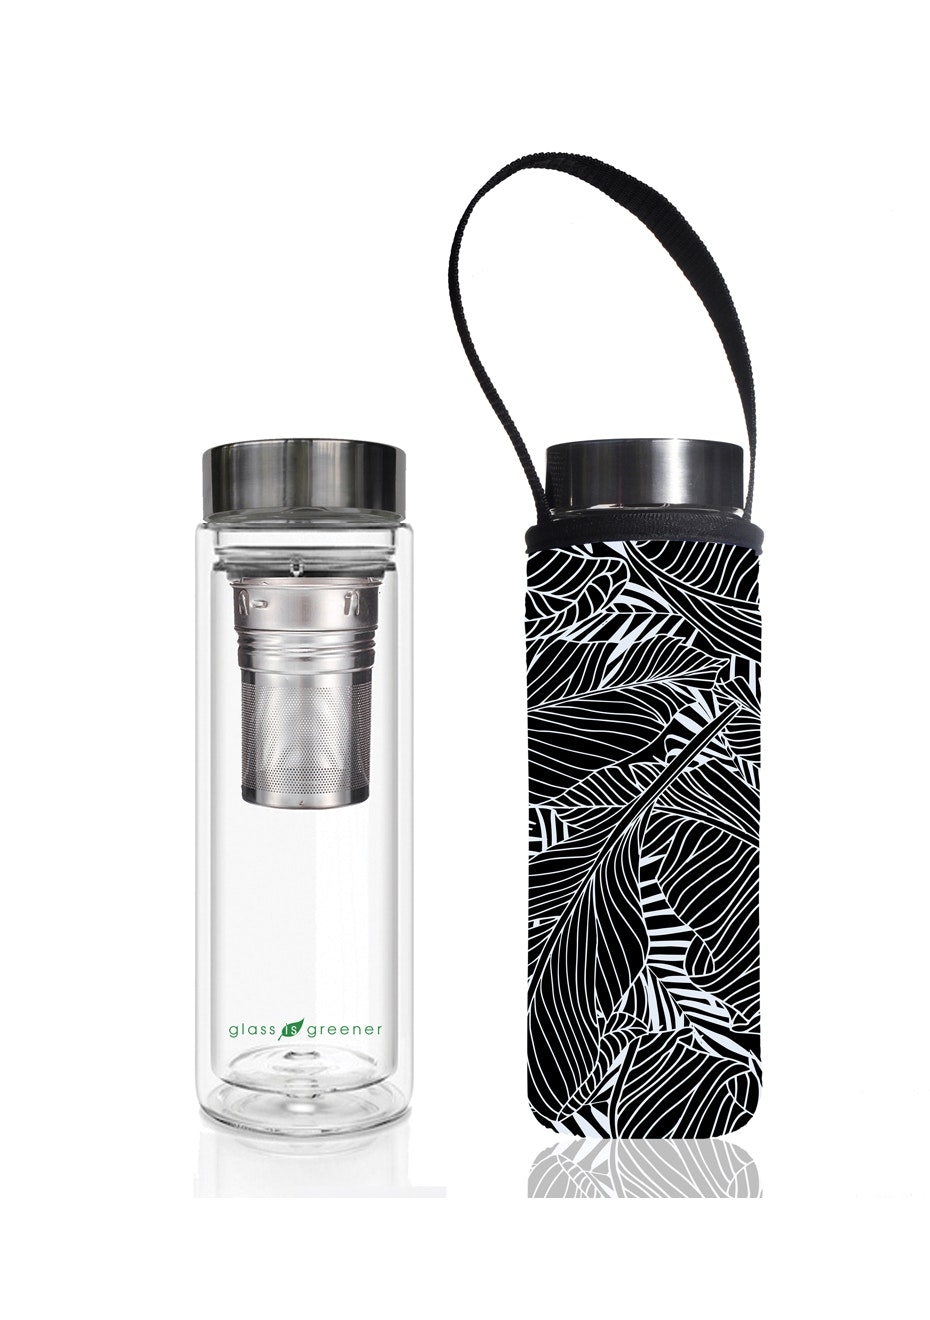 BBBYO - Glass Is Greener double-wall tea flask 500 ml + Carry Pouch (Black Leaf Print) -500 ml